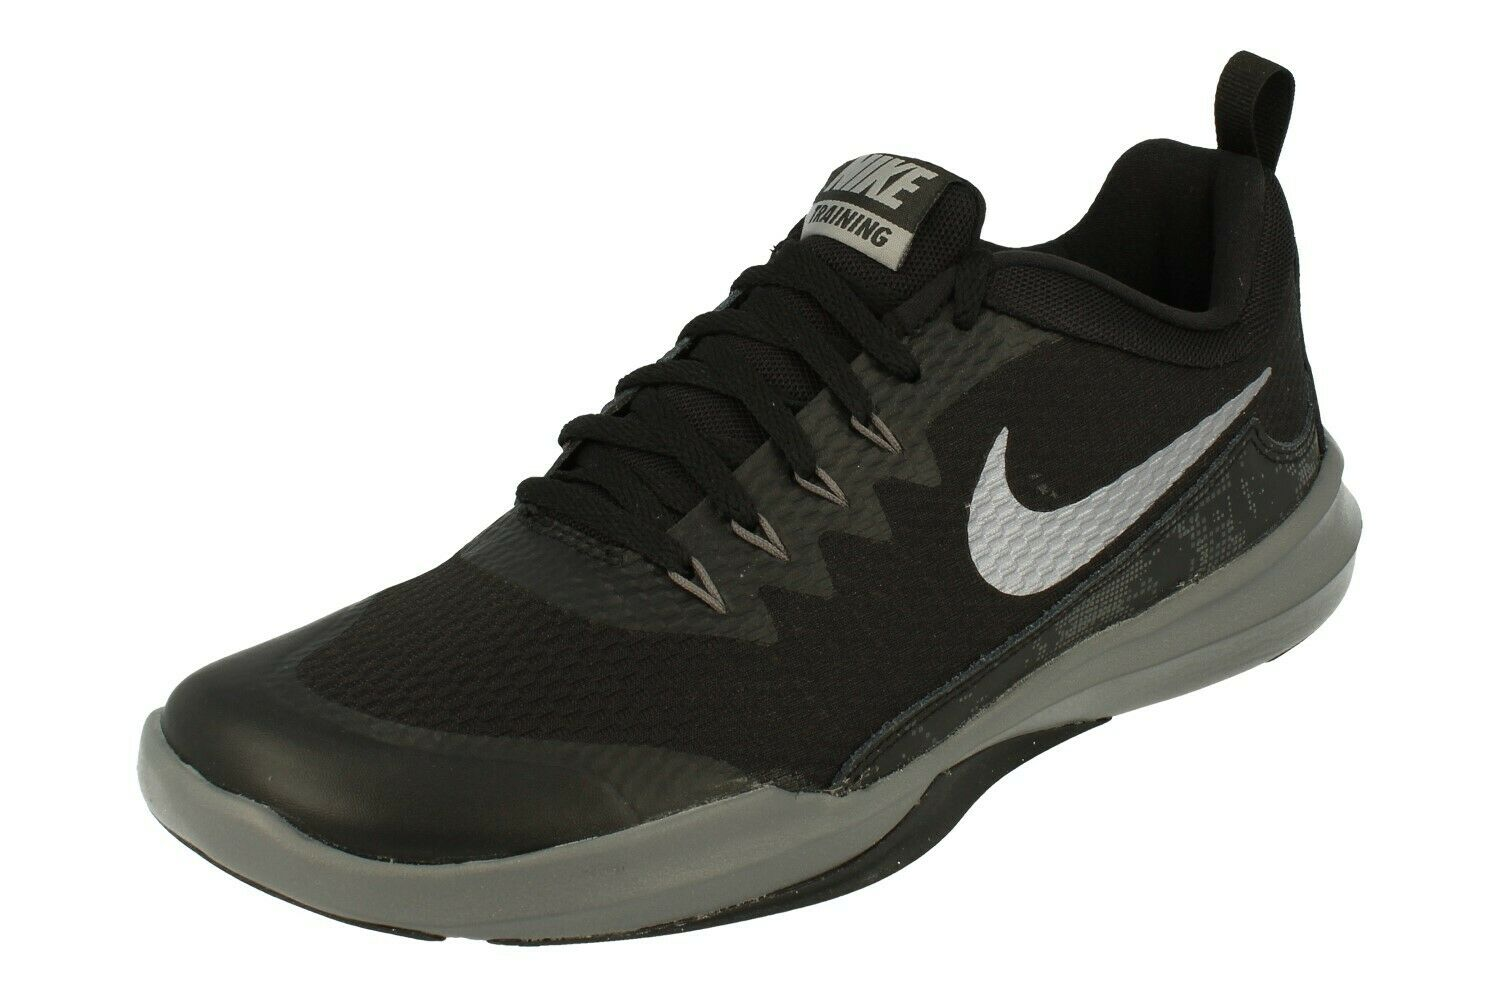 98802f39925ad Nike Legend Trainer Mens Running Trainers 924206 Sneakers shoes shoes shoes  003 3ed10d